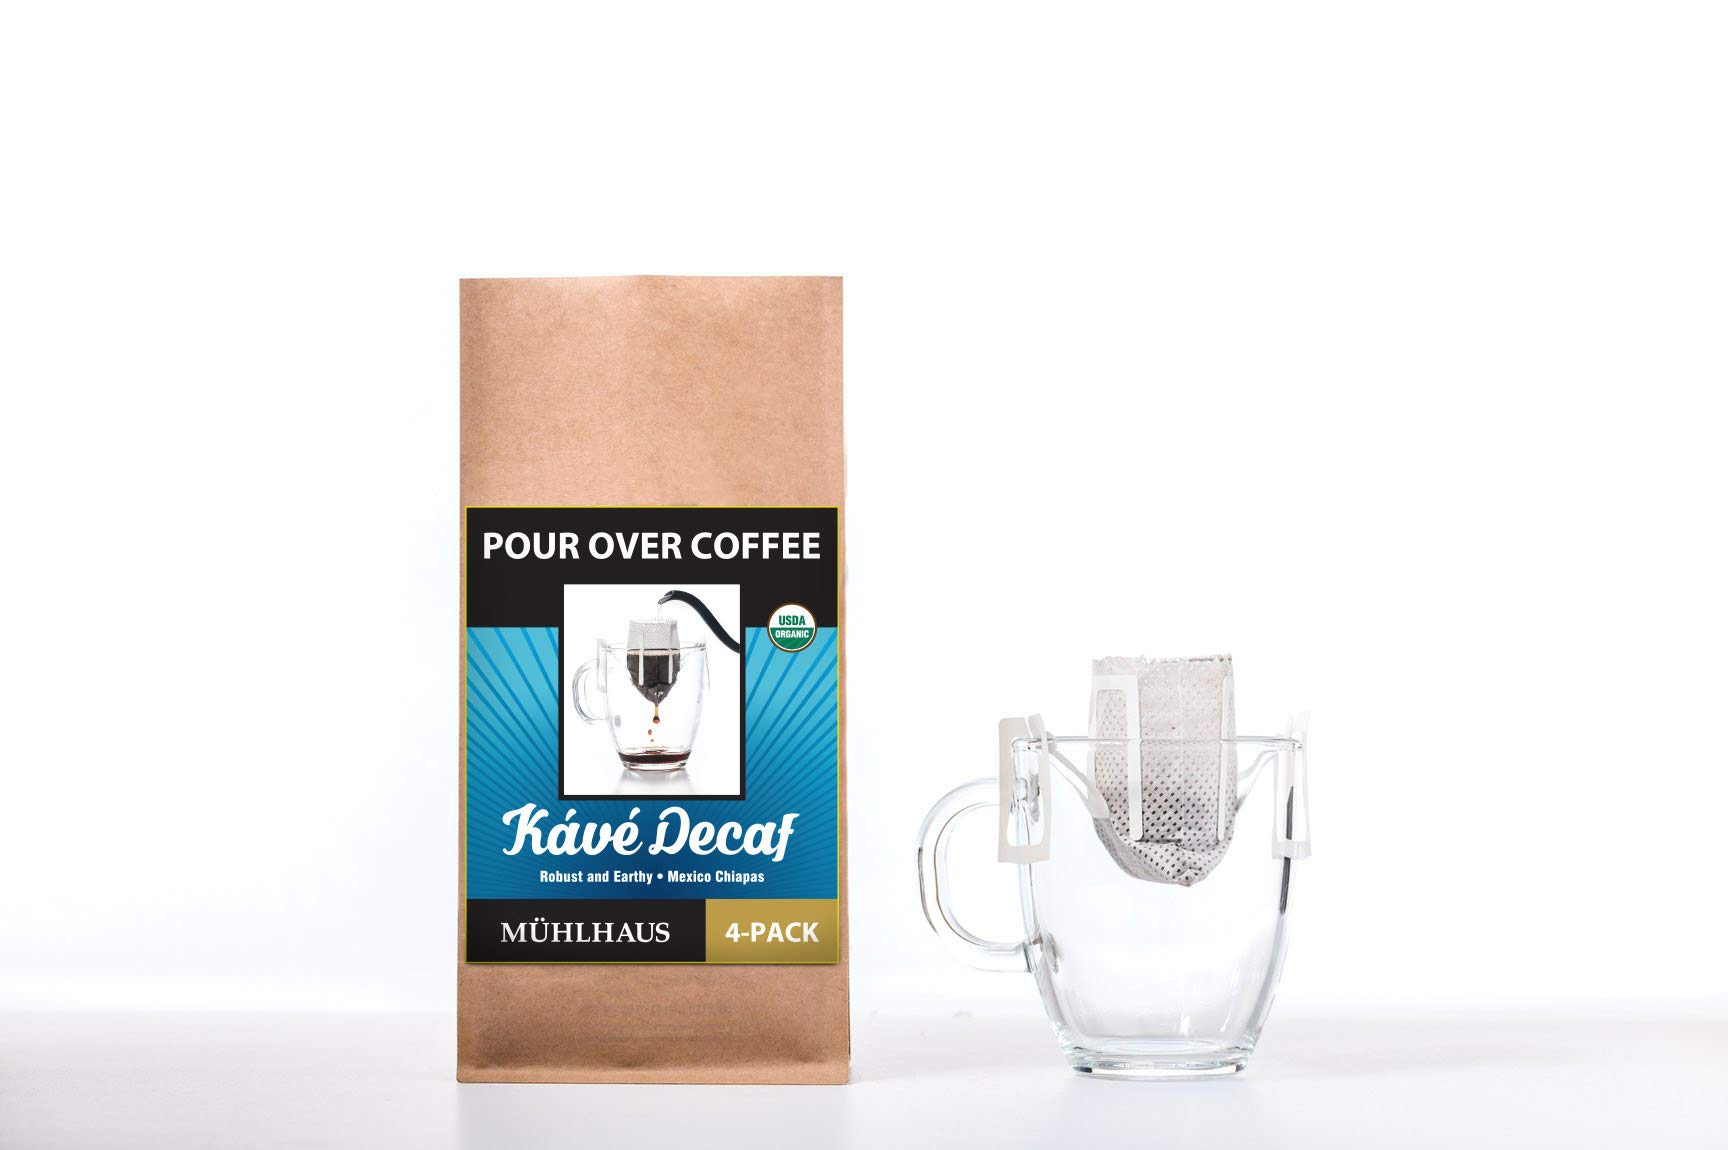 POUR OVER COFFEE, Kavé Decaf (Robust and Earthy, Mexico Chiapas), Worlds Most Advanced Portable Organic Coffee (8 Pack)